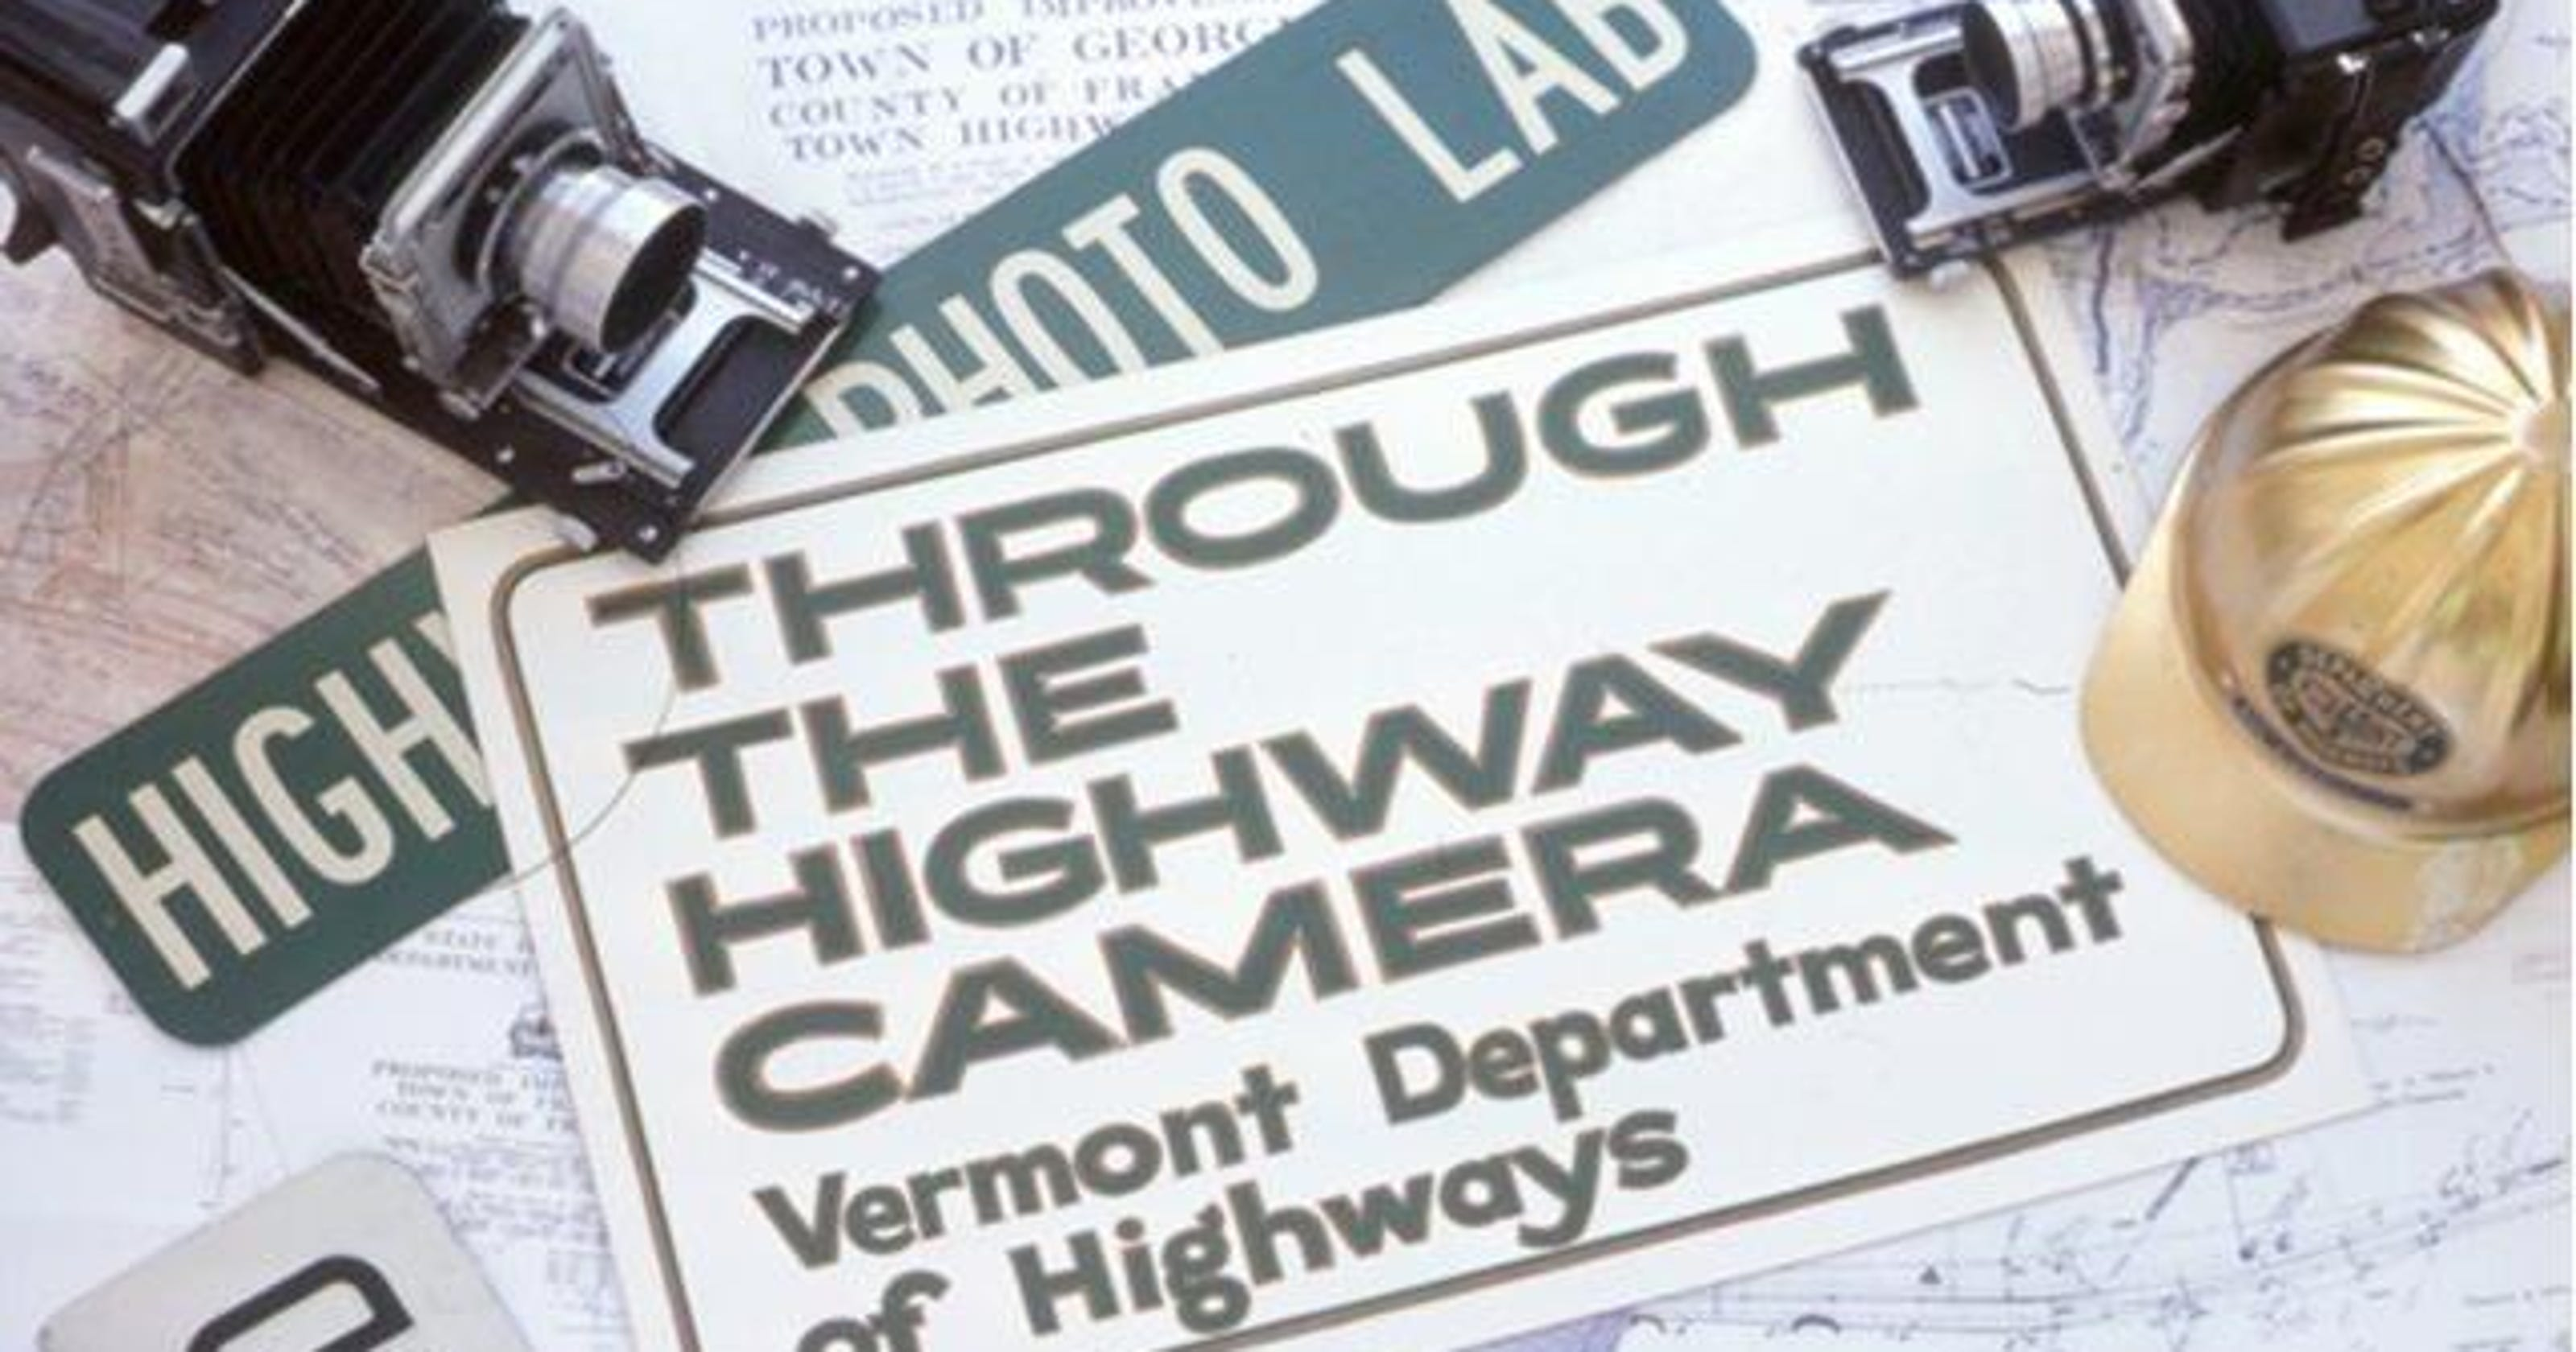 I-89 exit in Waterbury closed in afternoons